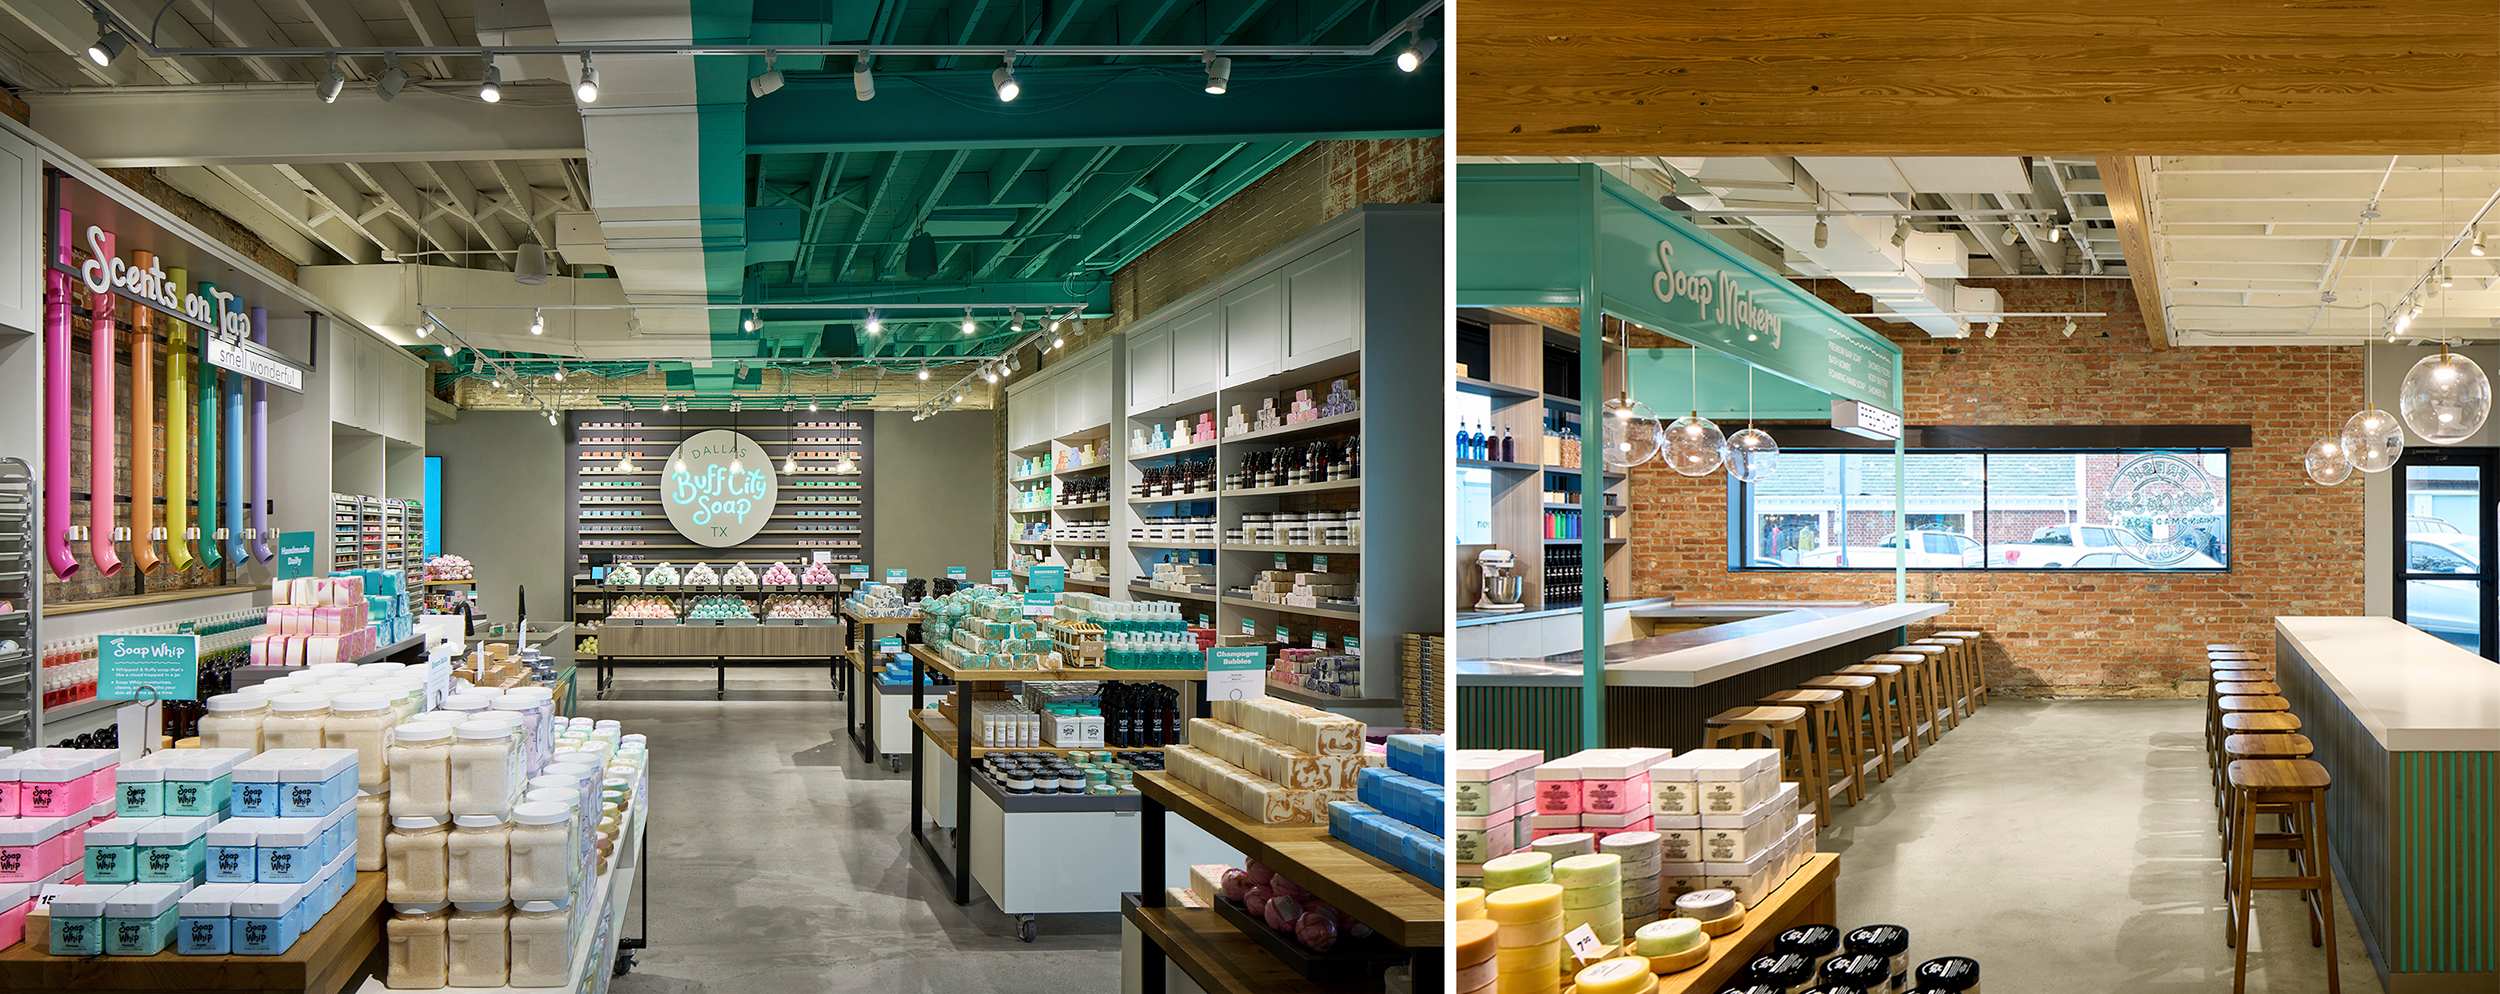 """The brand's """"Tokyo green"""" color is seen at experiential/interactive touchpoints throughout the space."""